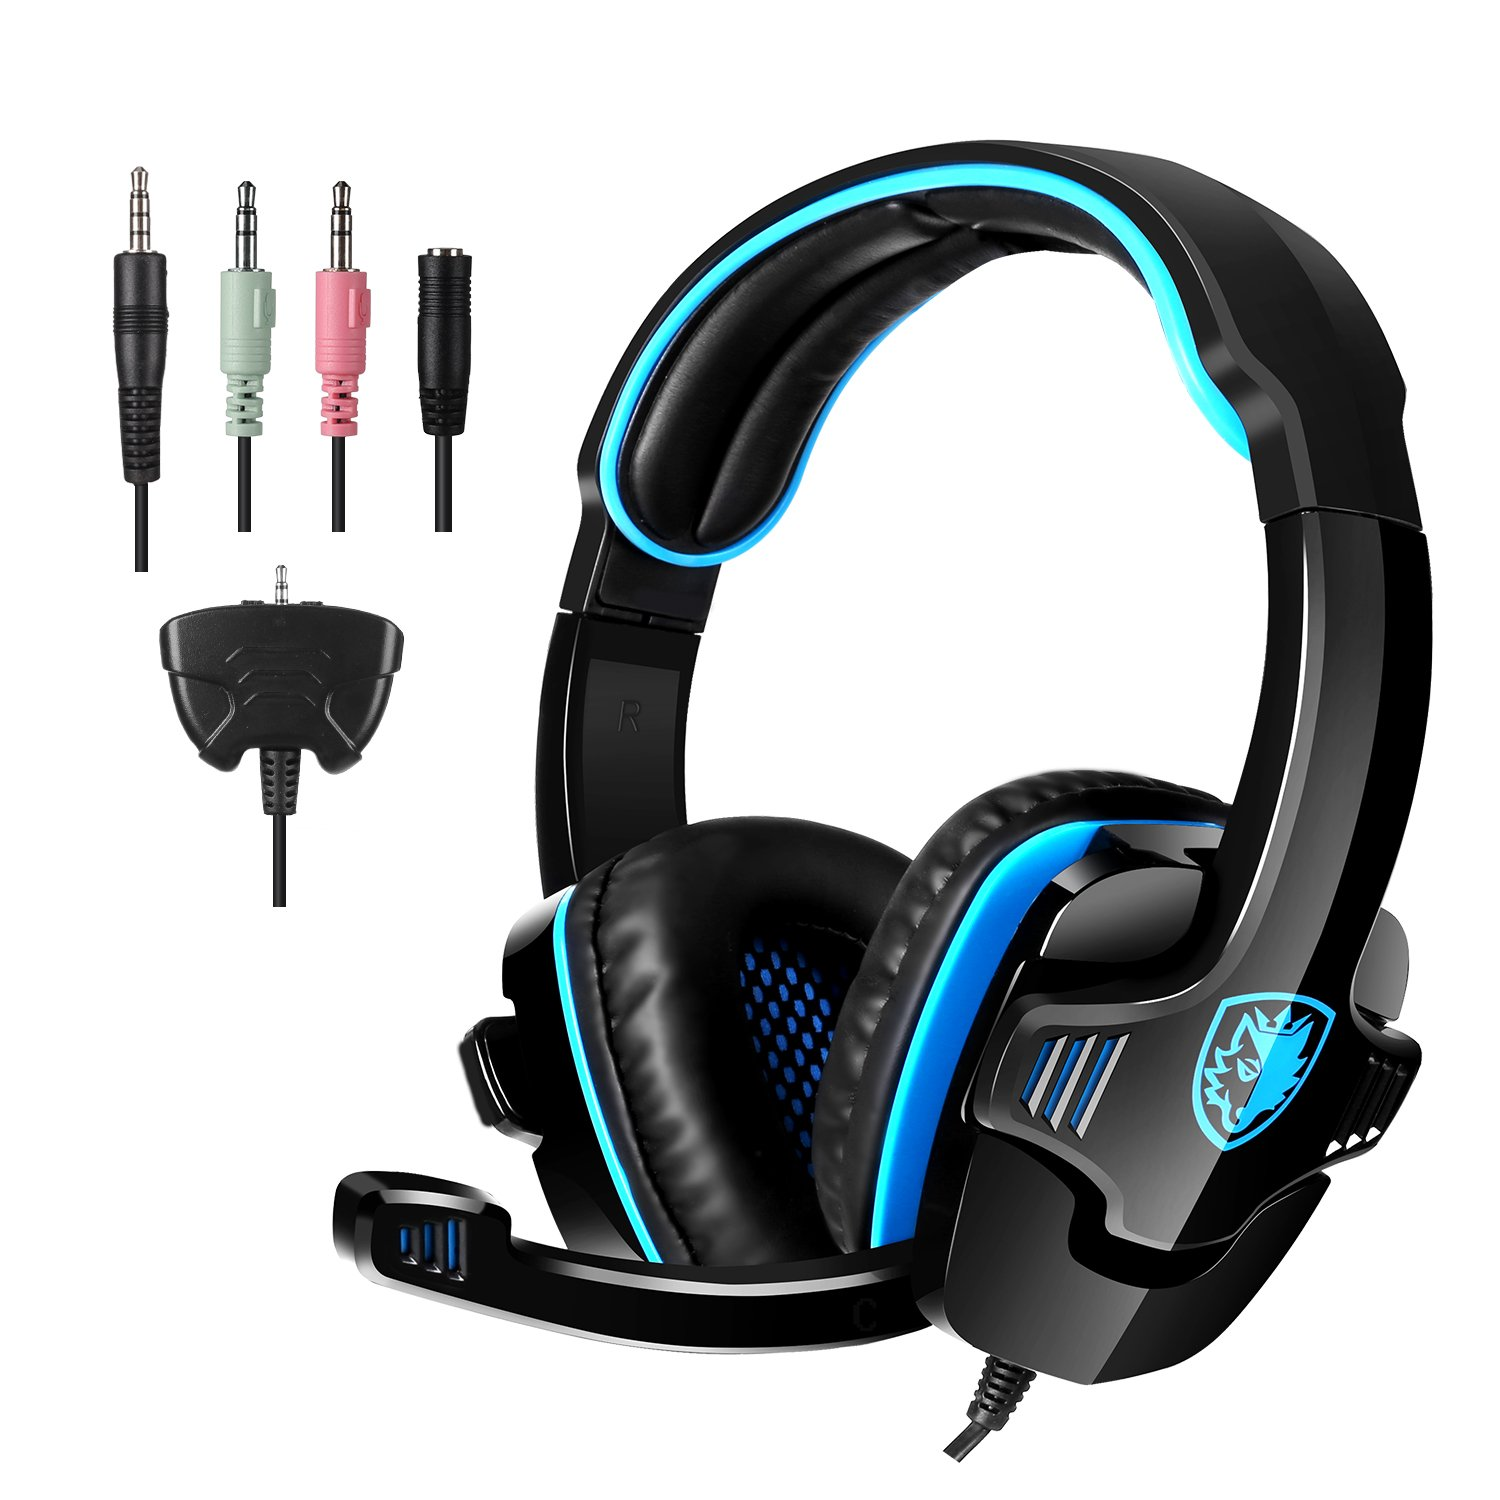 SADES Gaming Headset Headphone for PS4/PC/Laptop/Xbox 360 with Microphone SA-708GT by SADES